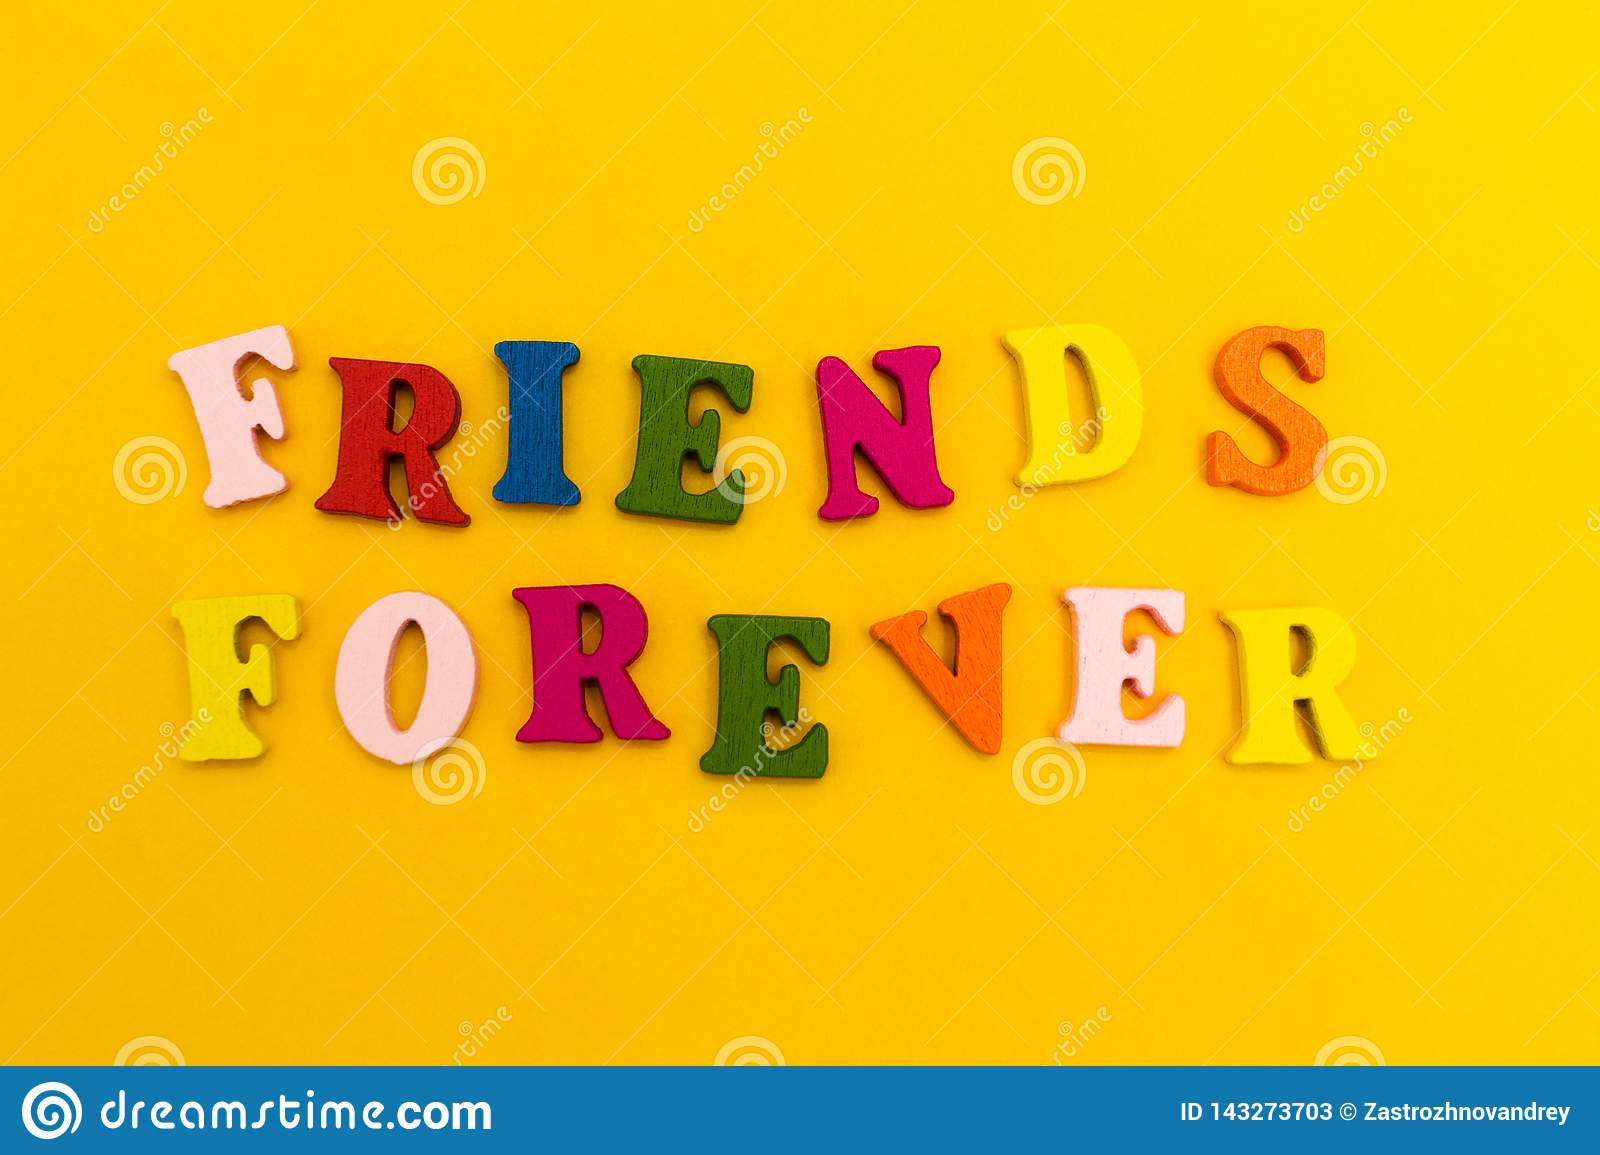 Multicolored letters on a yellow background. Friends forever